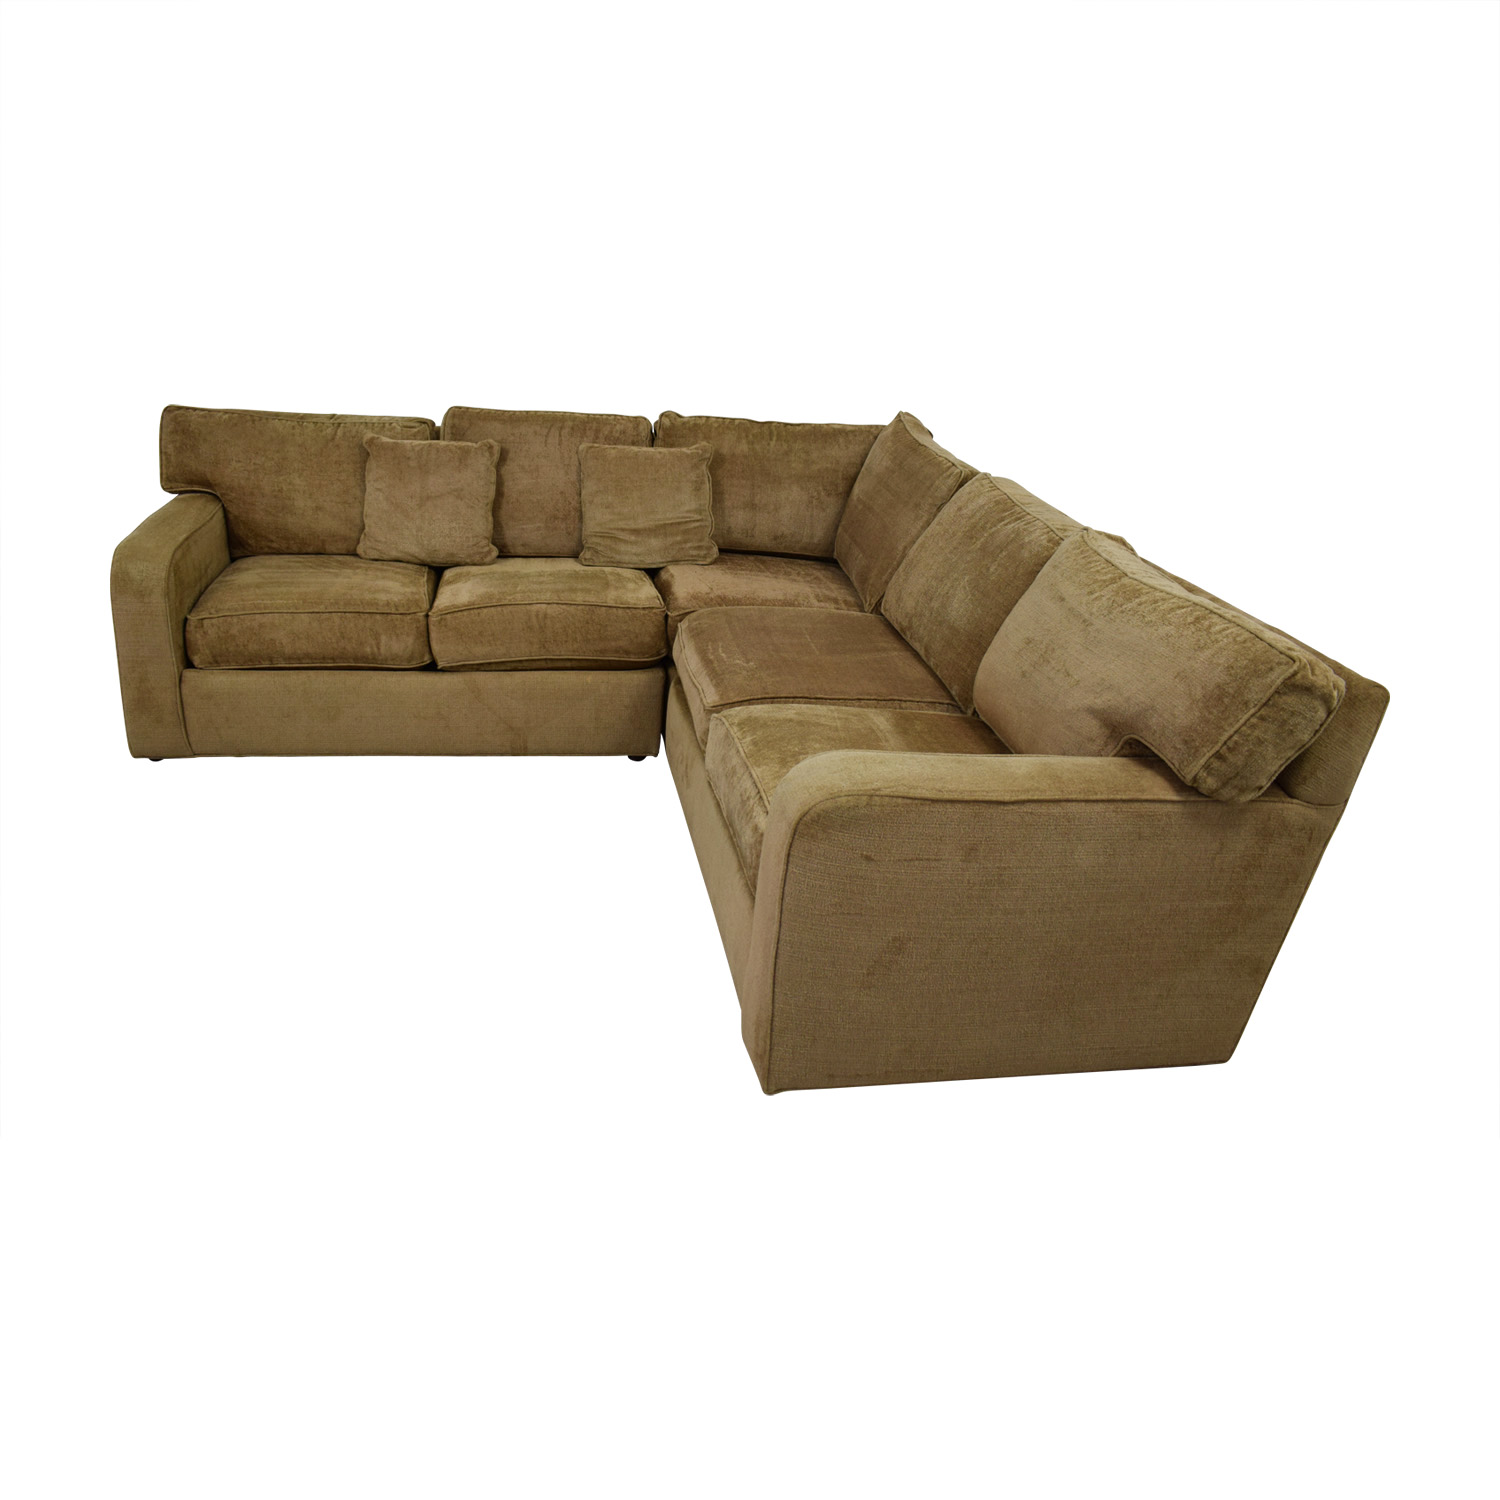 Ethan Allen Ethan Allen Taupe L-Shaped Sectional used